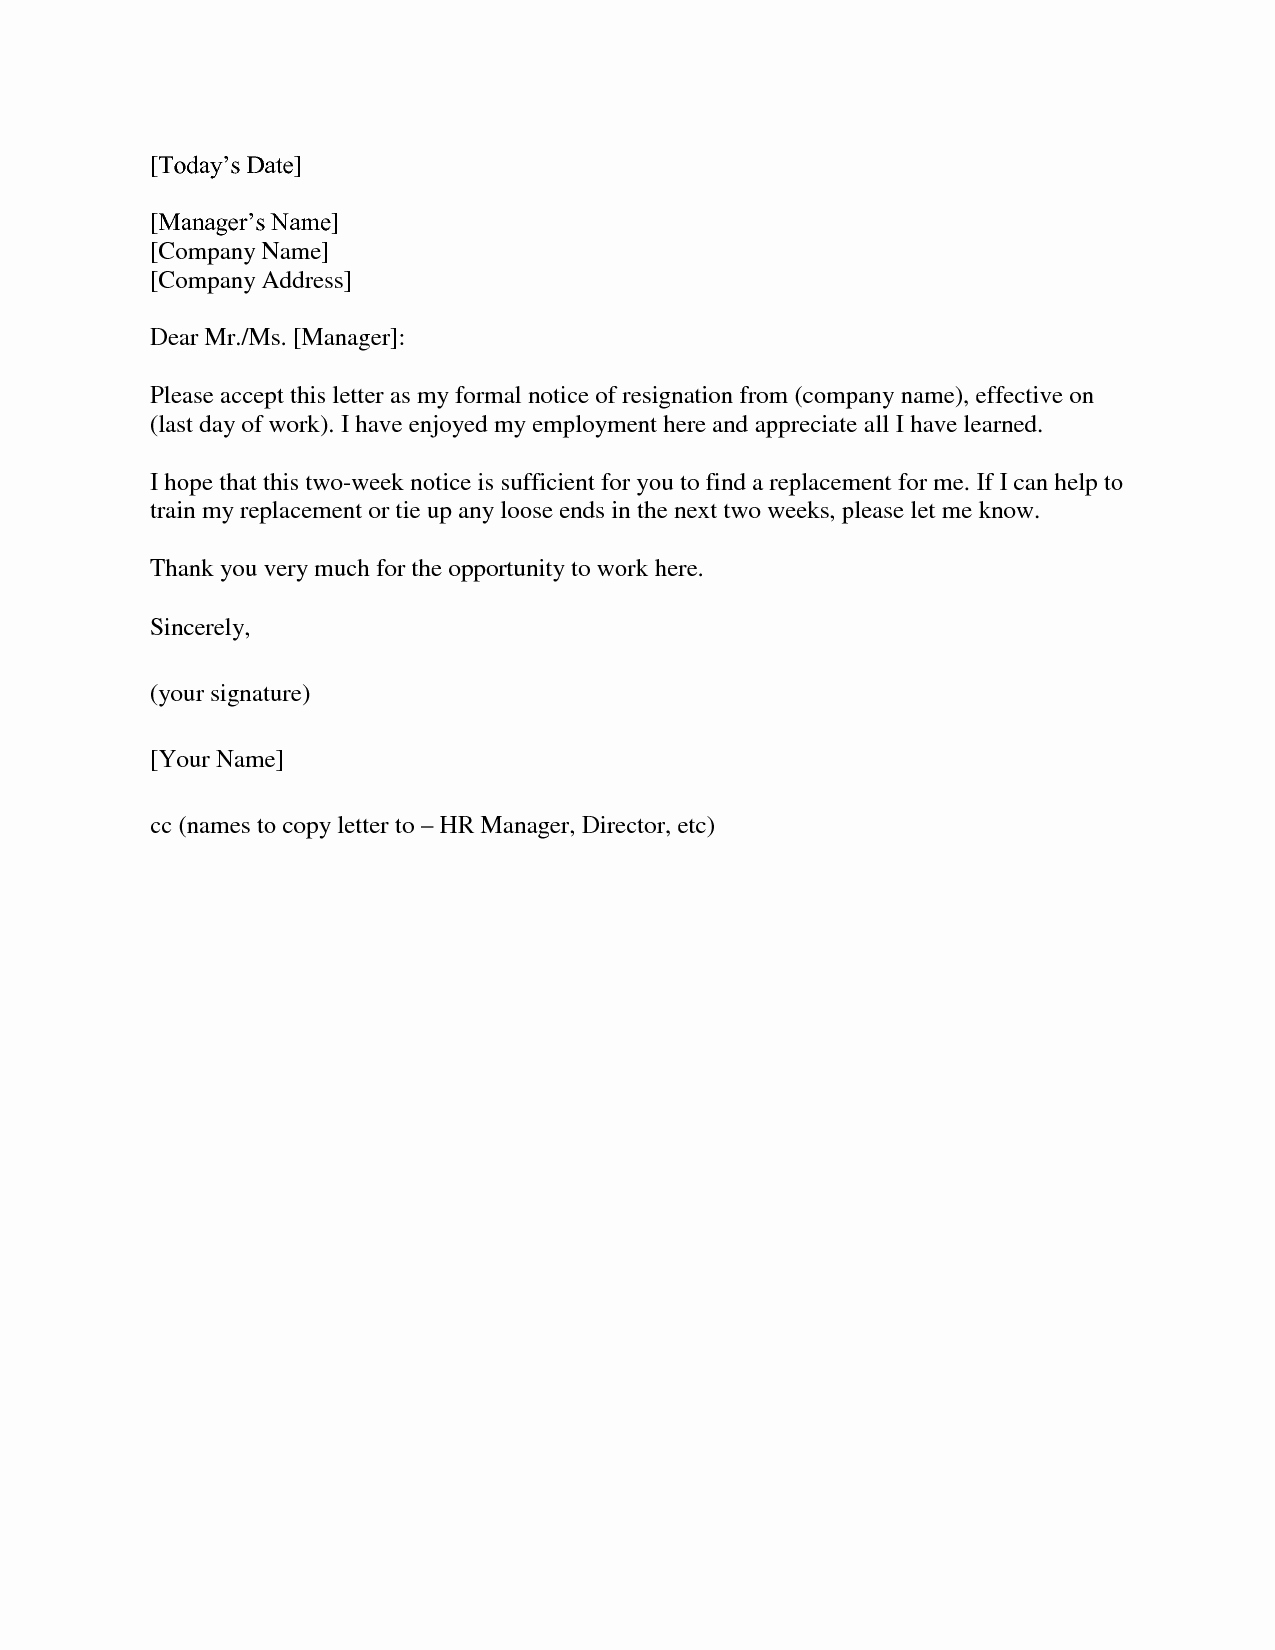 Resignation Letter 2 Week Notice Beautiful 2 Weeks Notice Letter